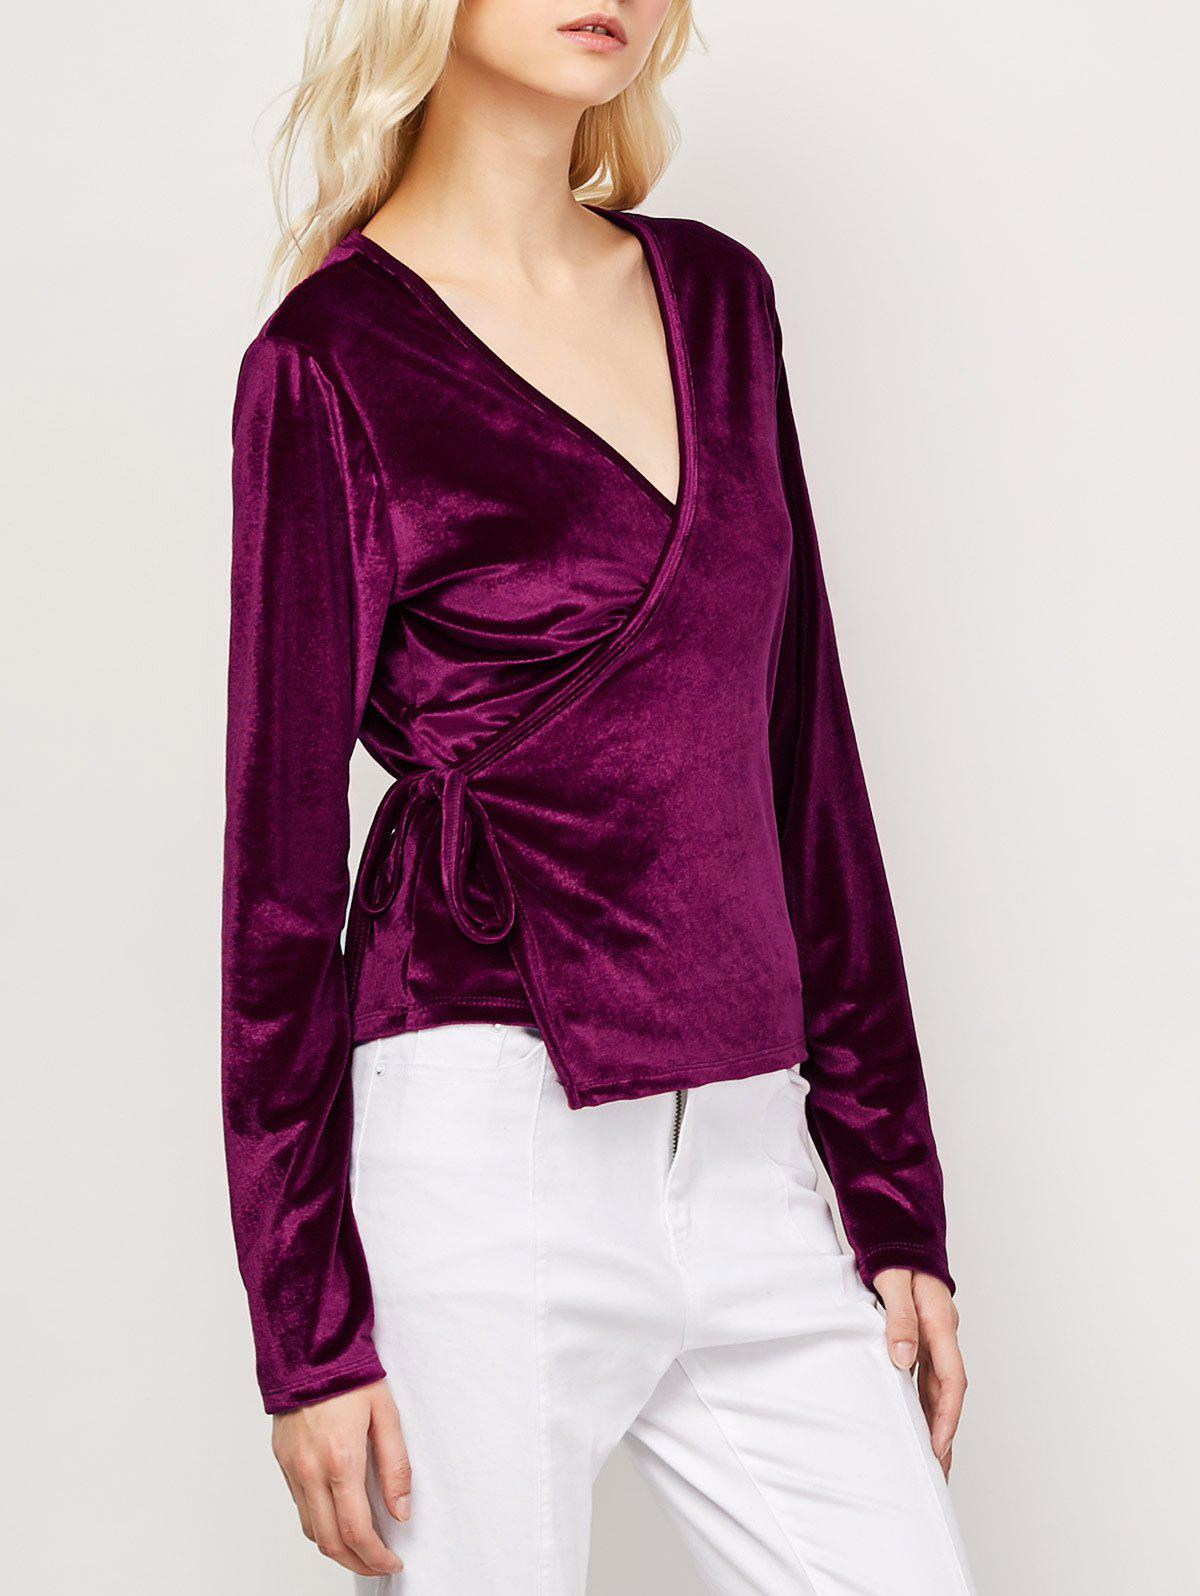 Long Sleeved Velvet Wrap Top - WINE RED S